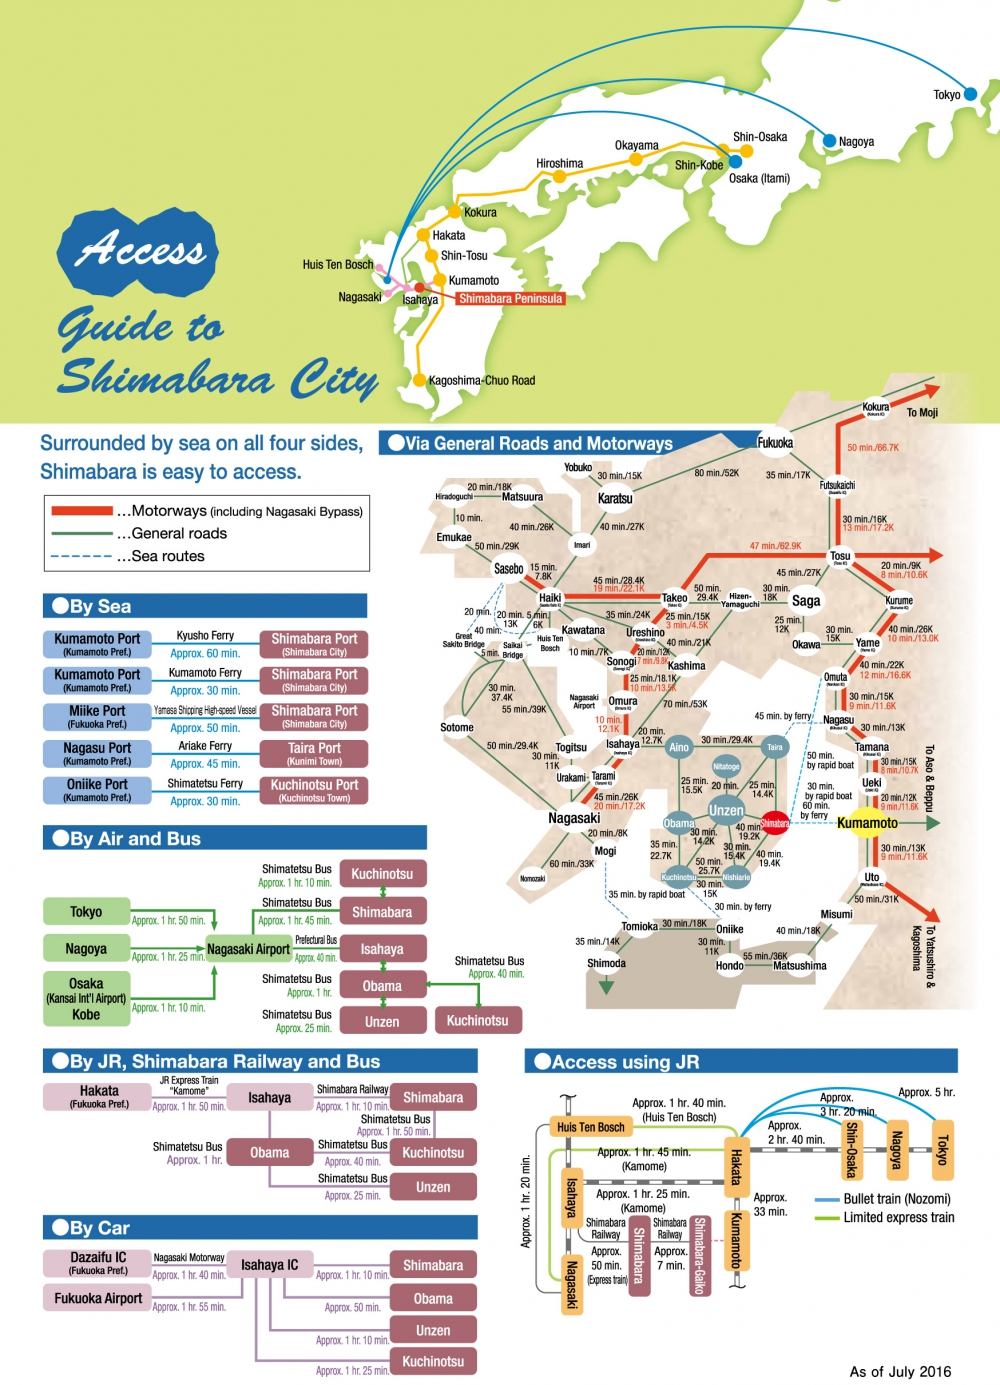 Access Guide to Shimabara City.